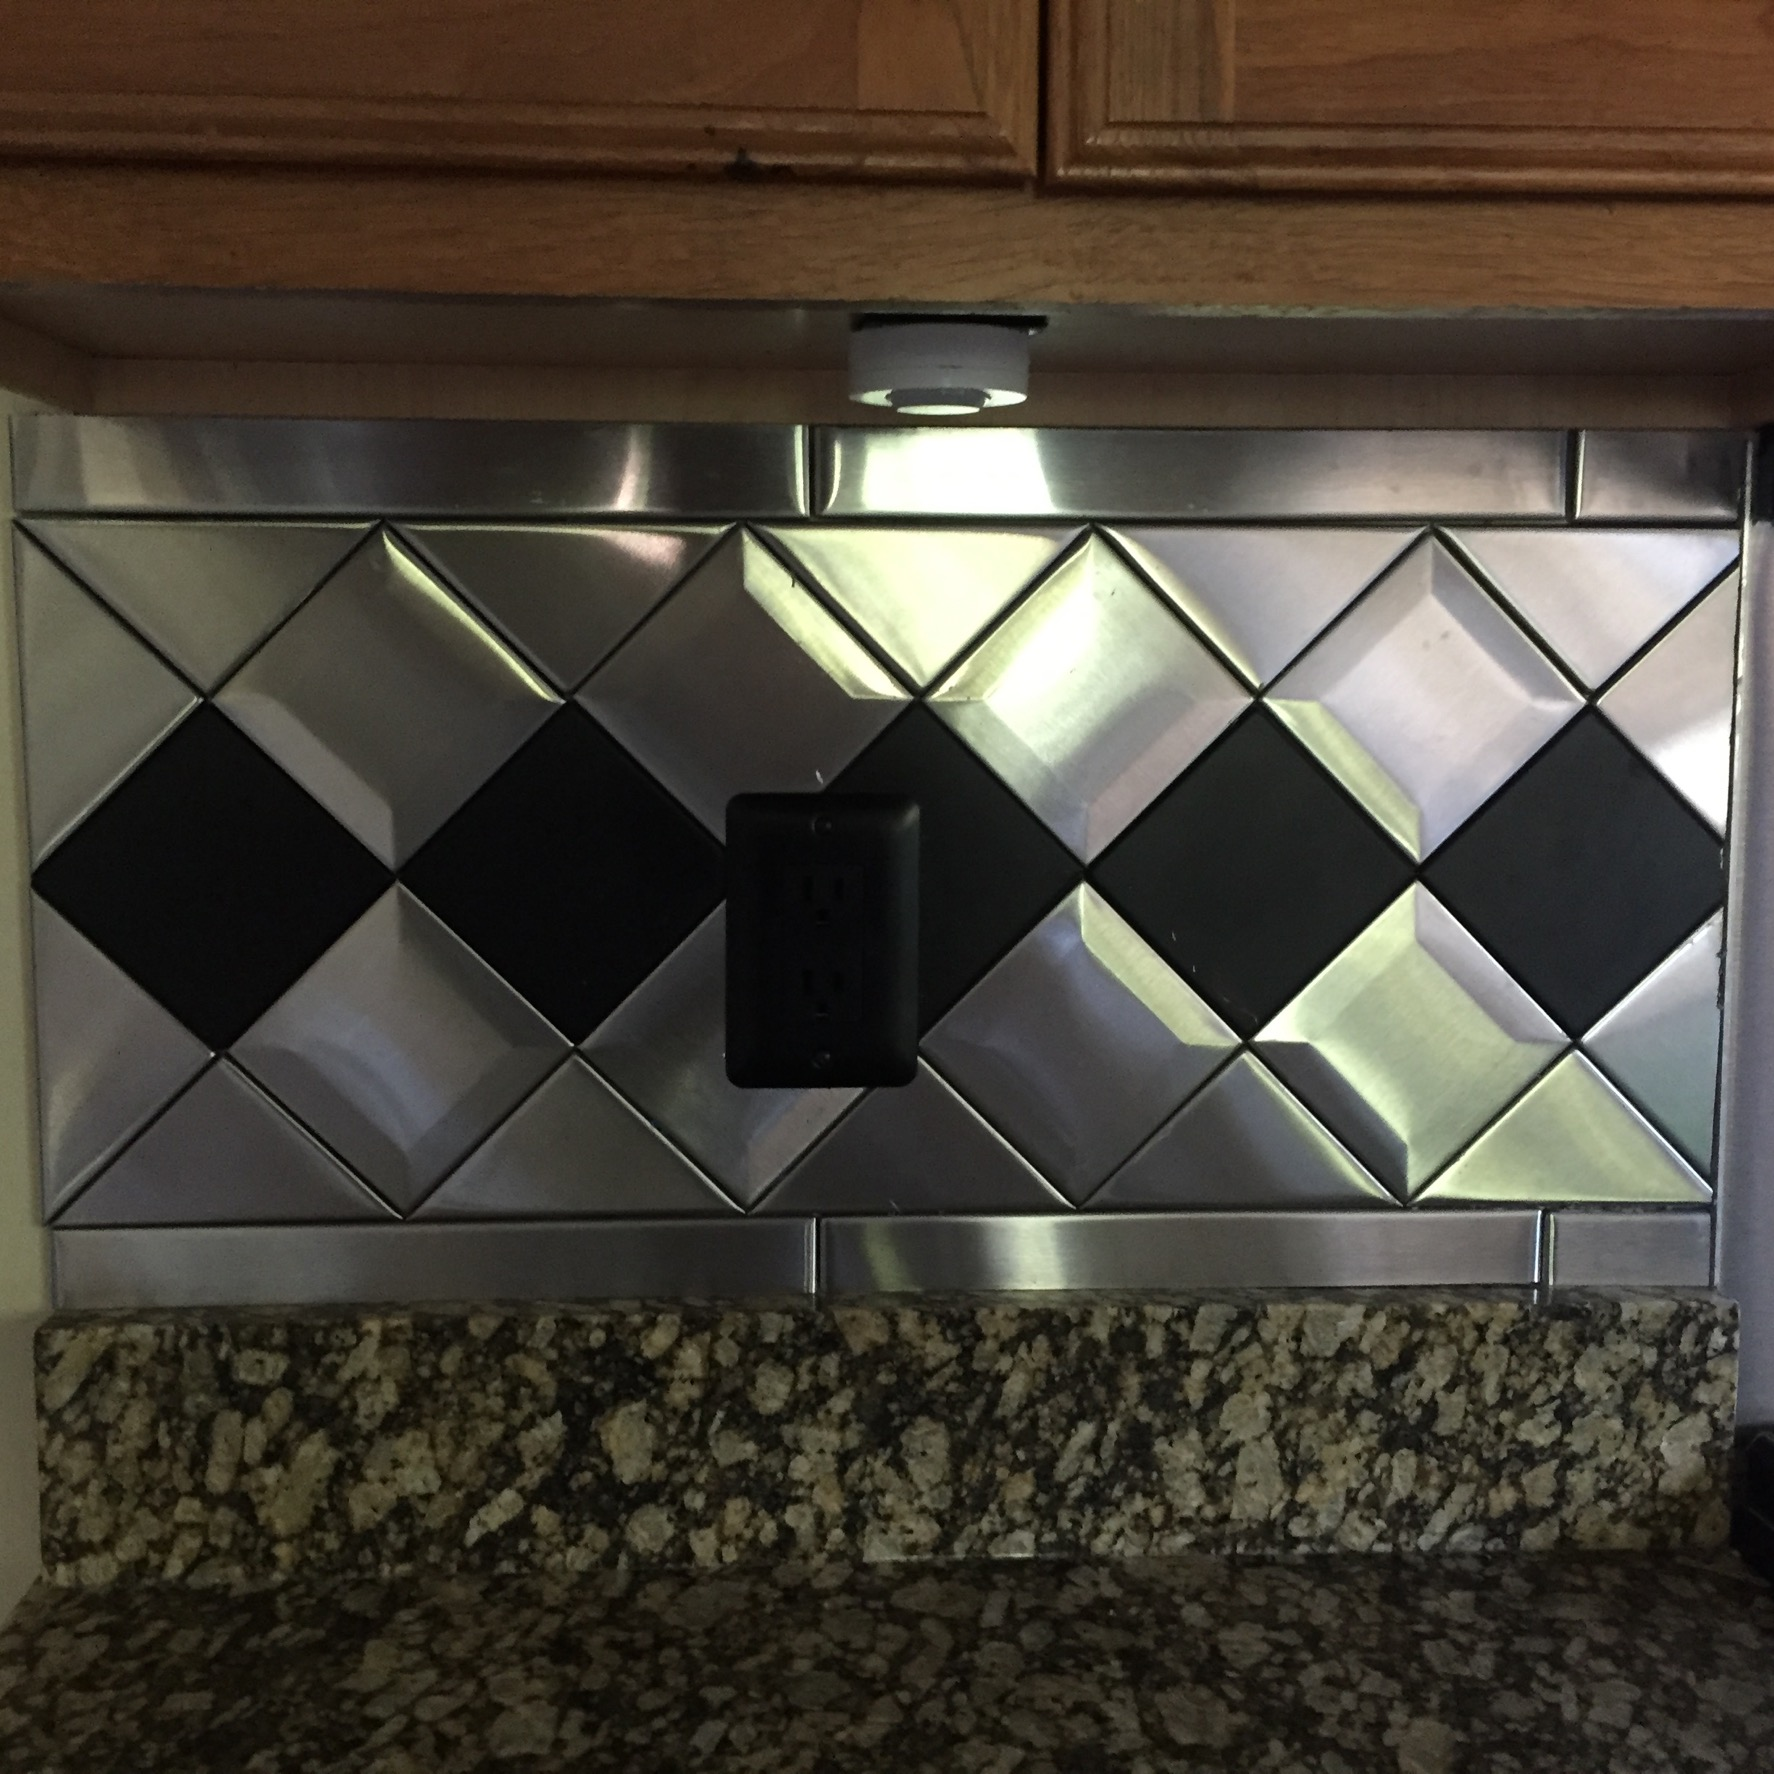 4 X Accent Beveled Stainless Steel Tile